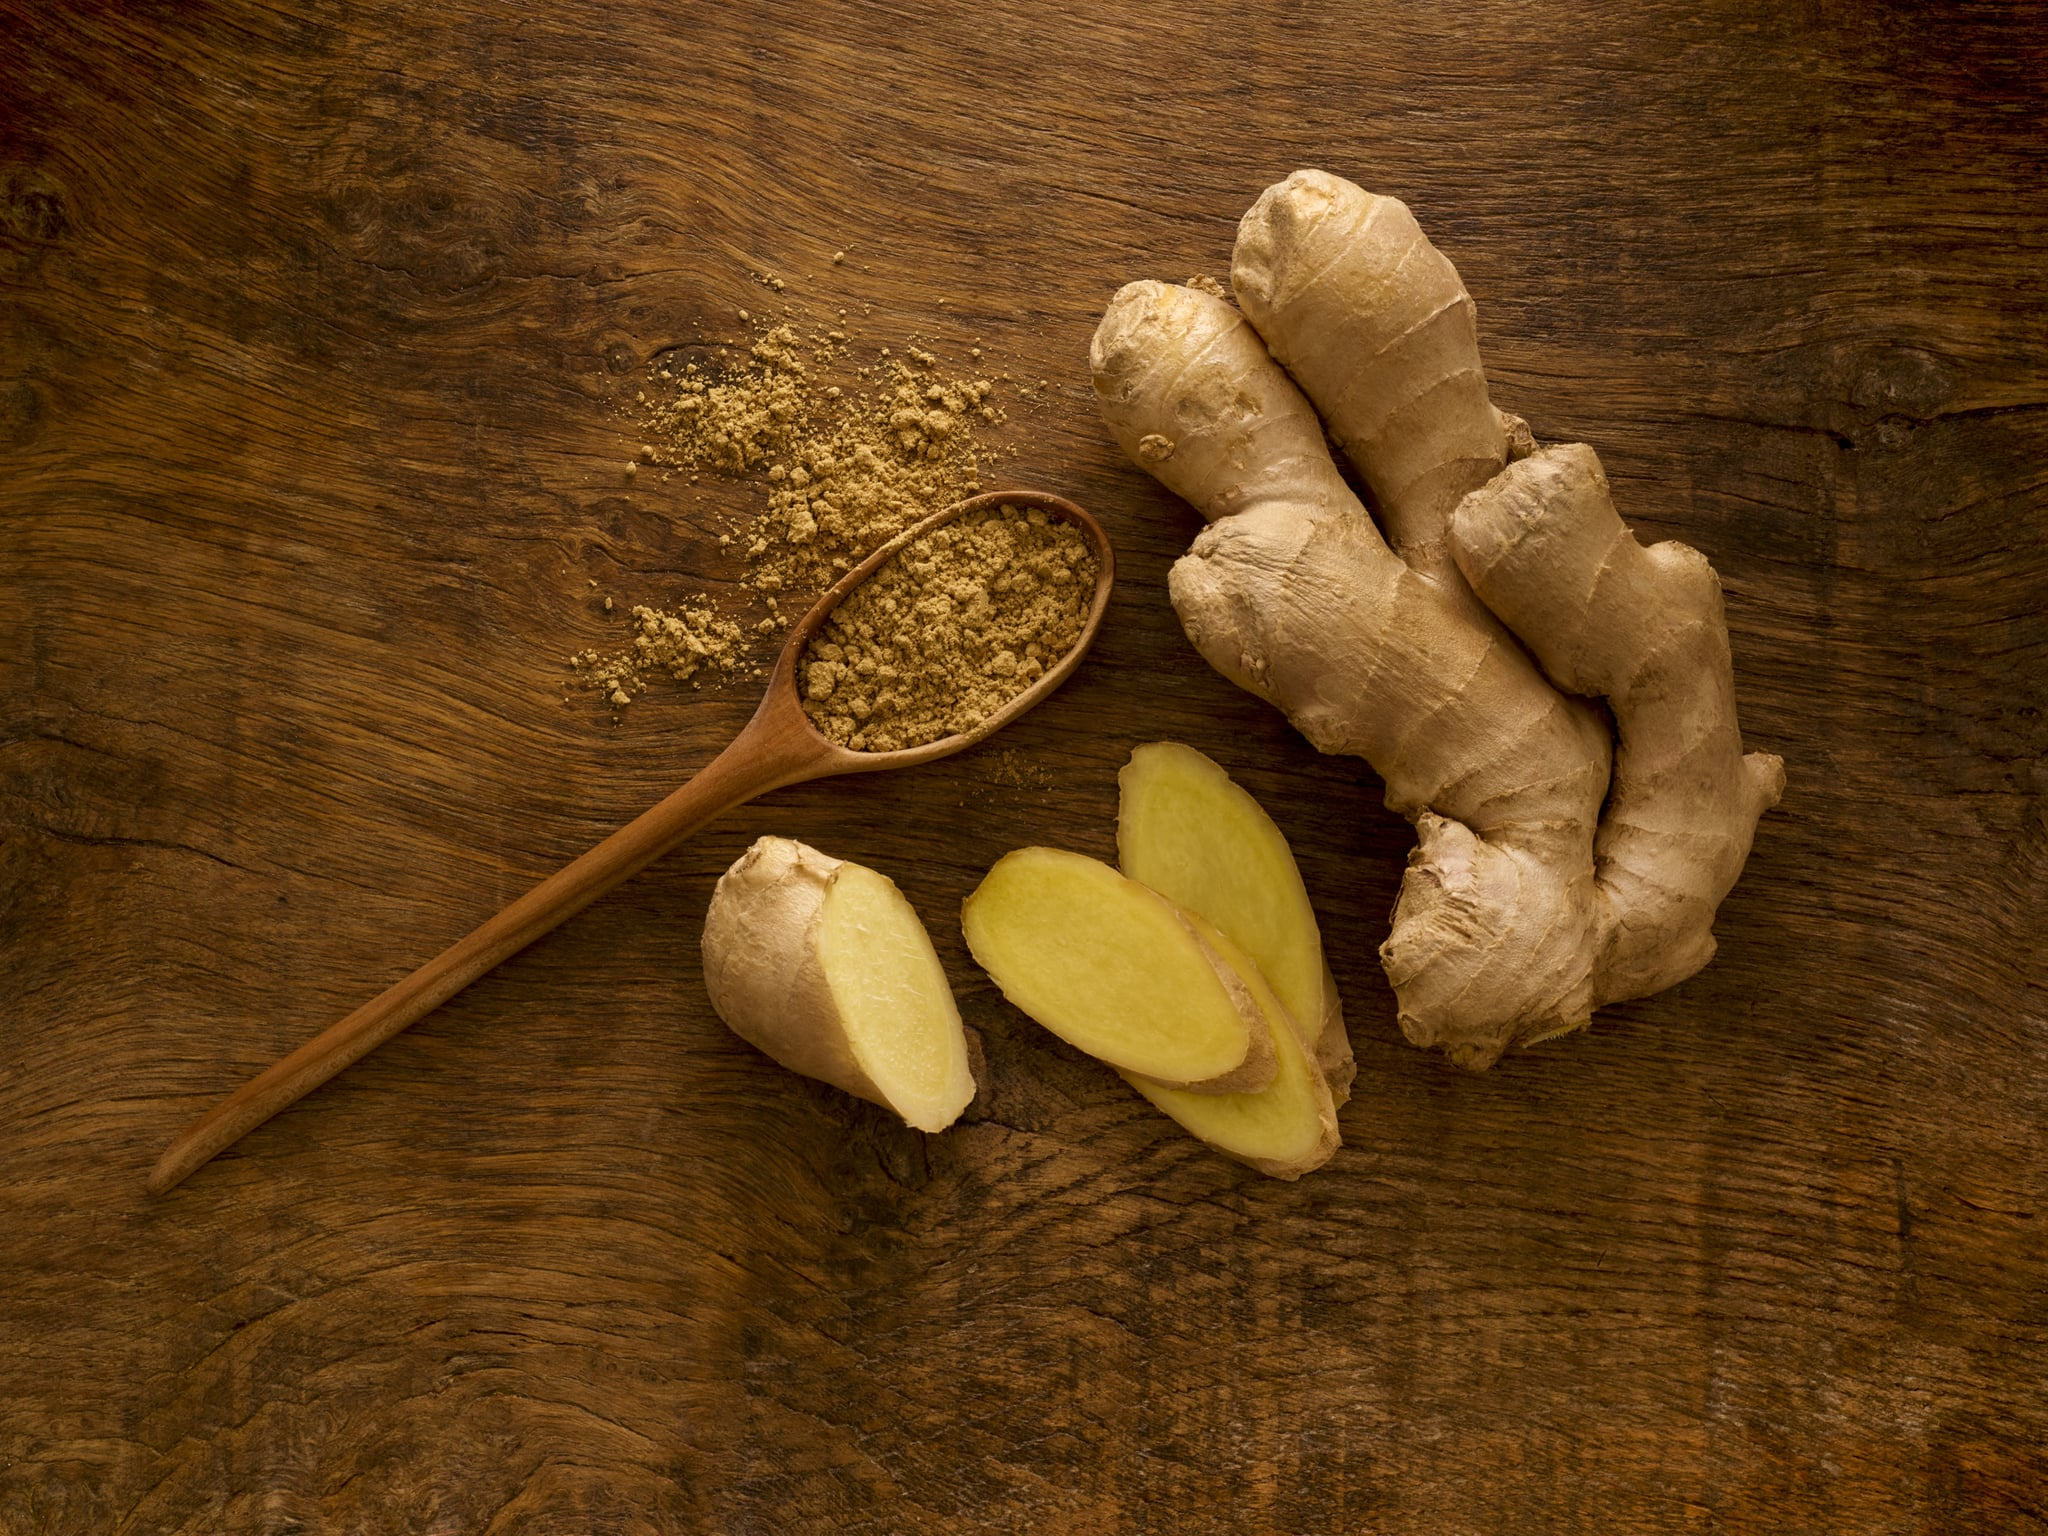 Ginger root and powder, studio shot.